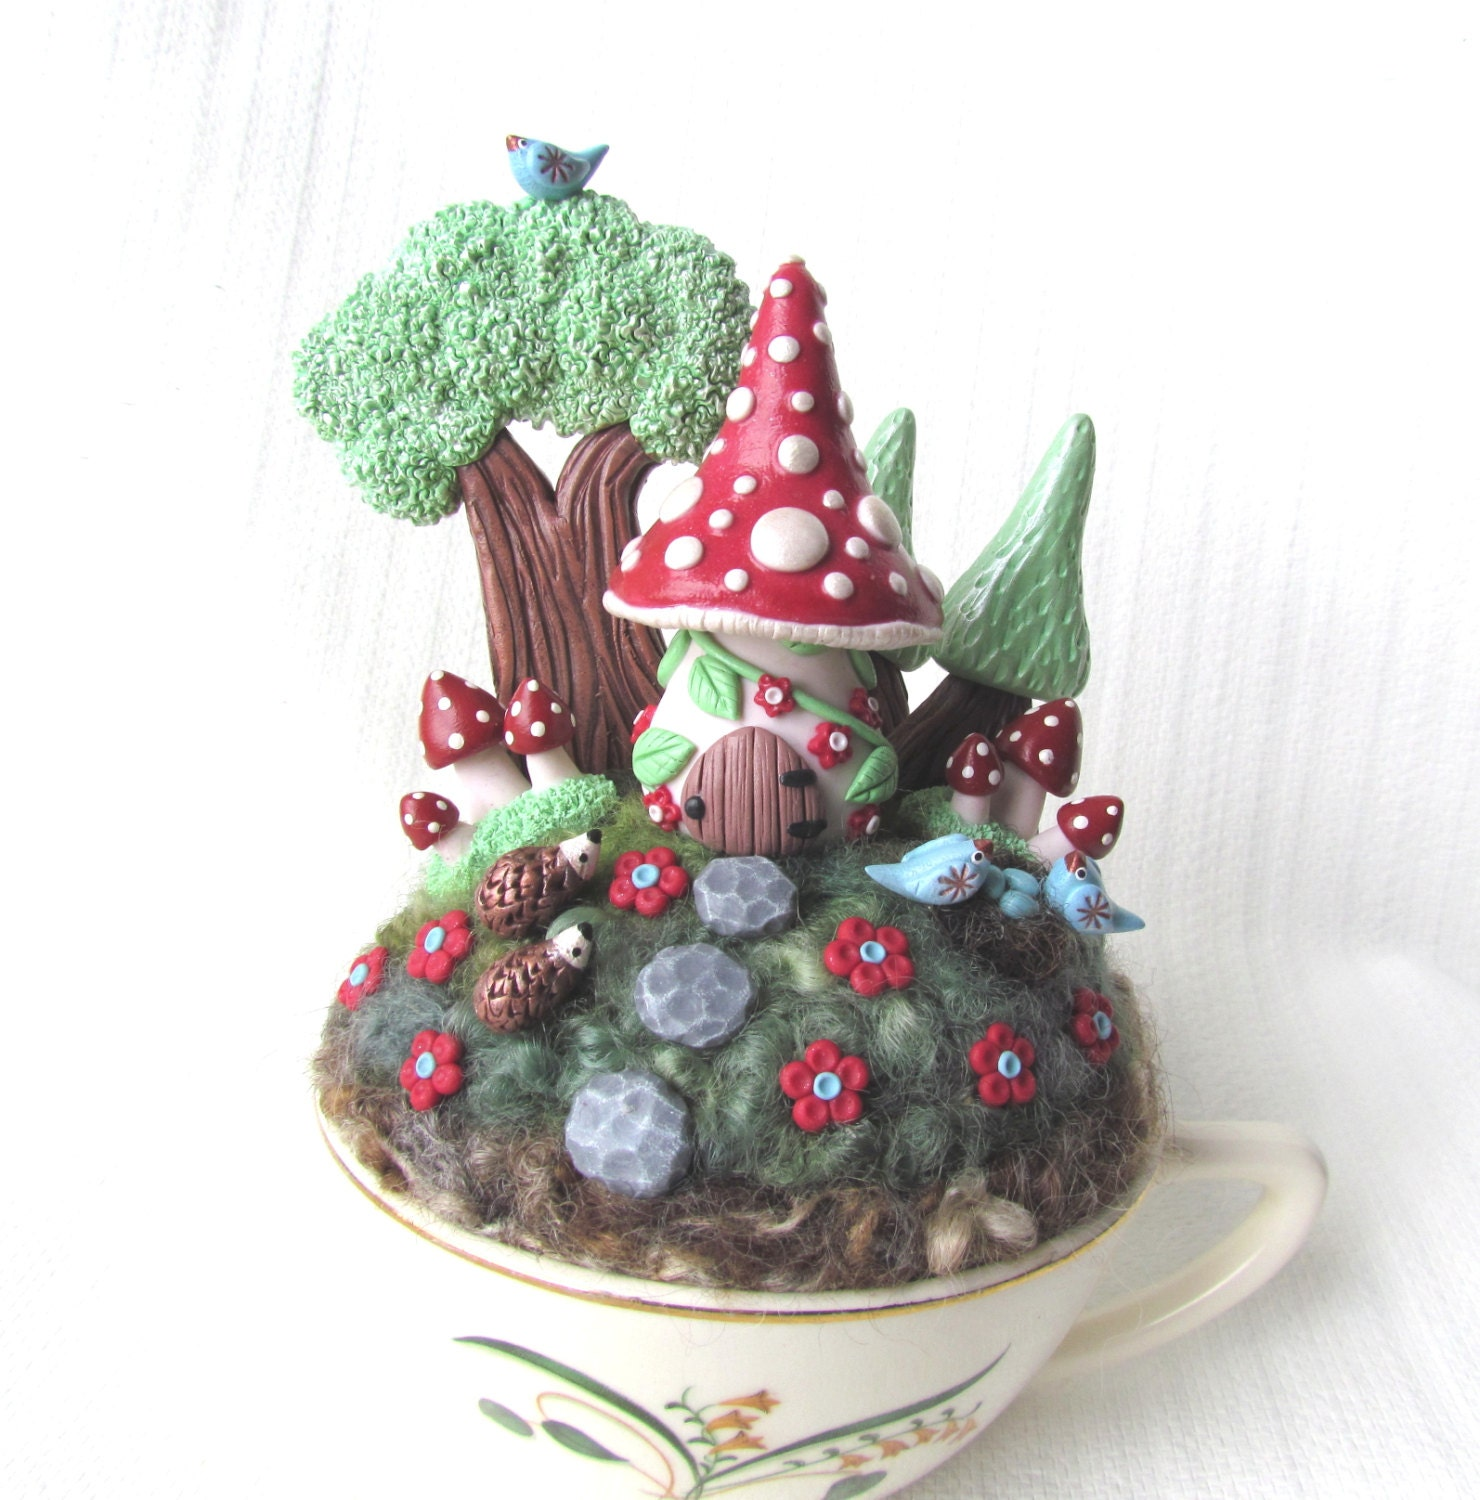 Garden Gnomes On Sale: Sale 28.00 Was 35.00 / Fairy Gnome House Garden In A Cup